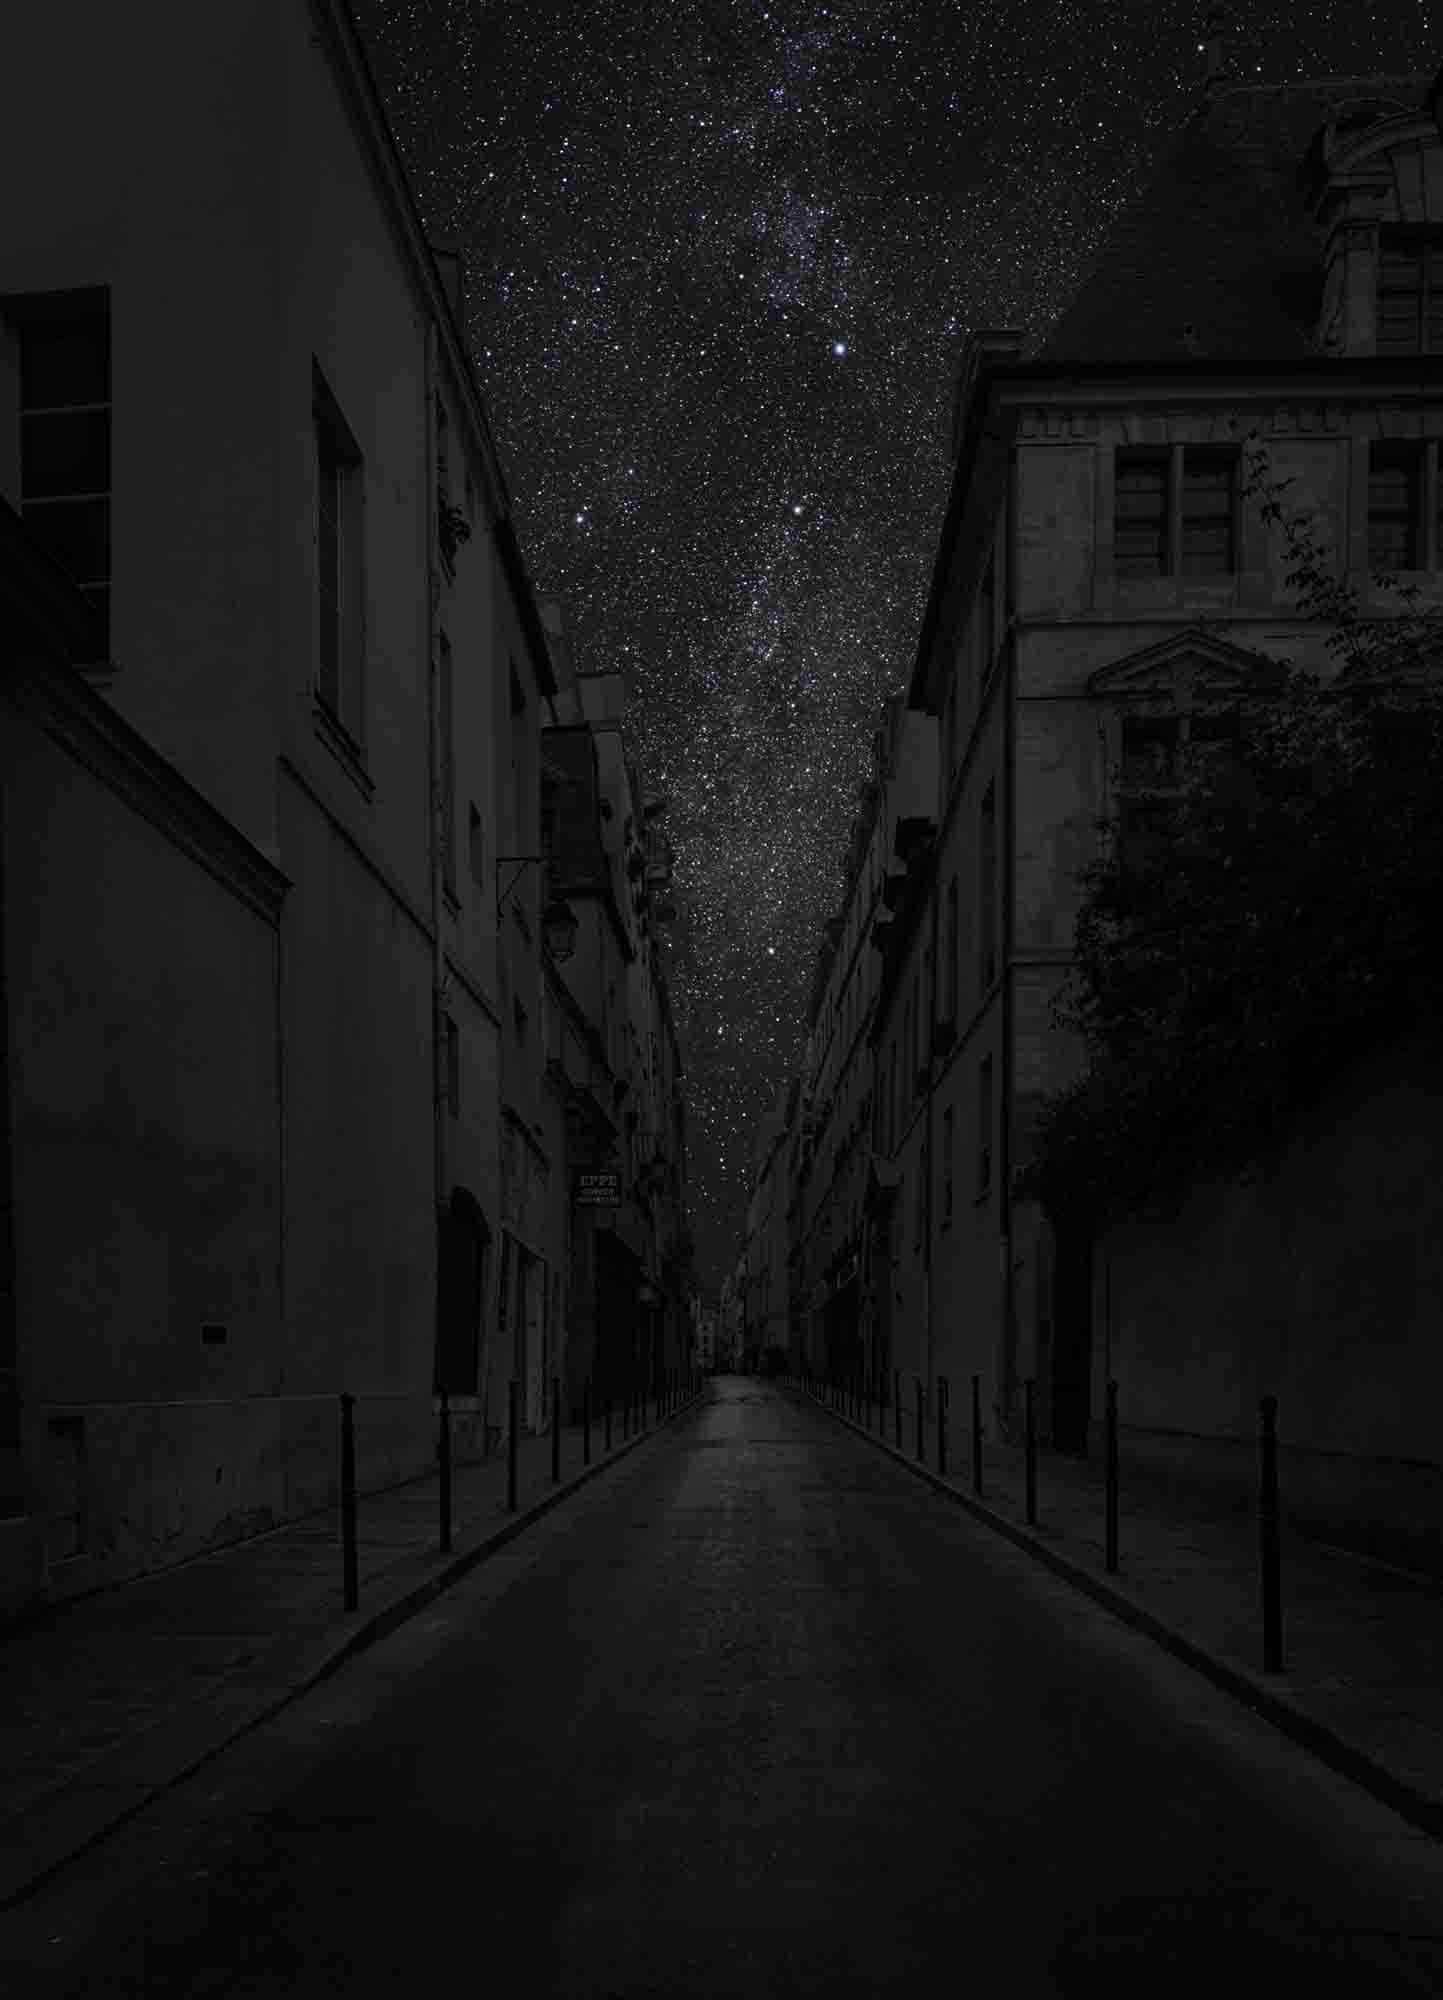 Paris 48° 51' 46'' N 2012-09-13 lst 2:16<br/>Darkened Cities - Villes éteintes